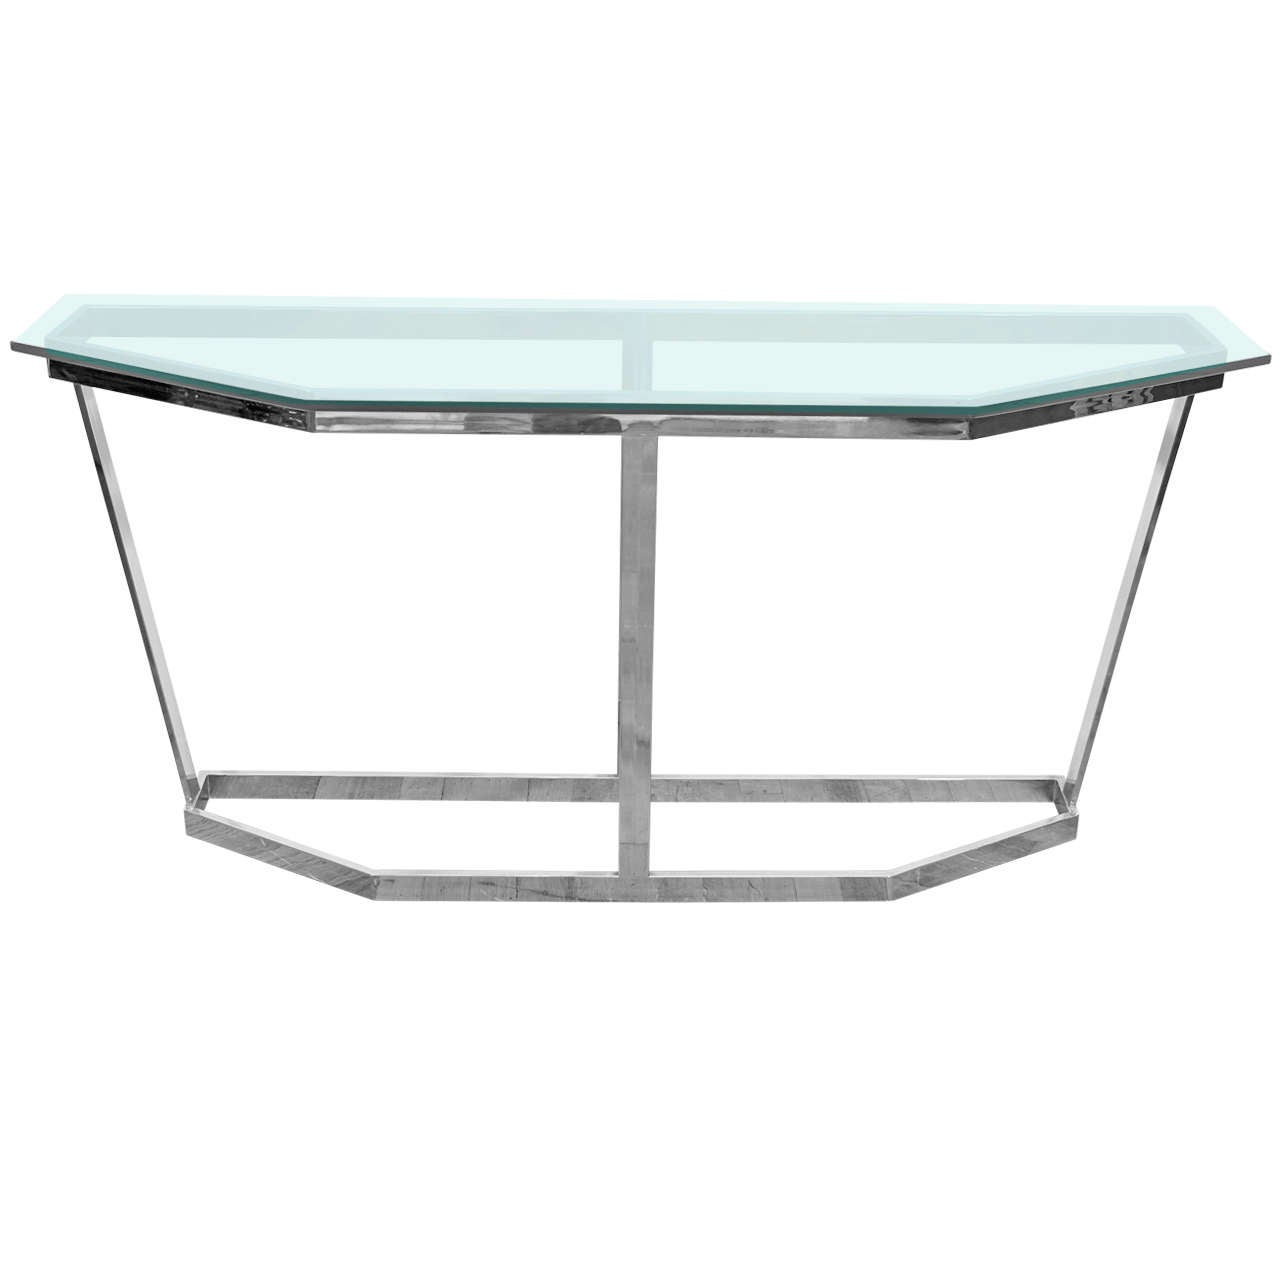 a mid century angular chrome and glass console table